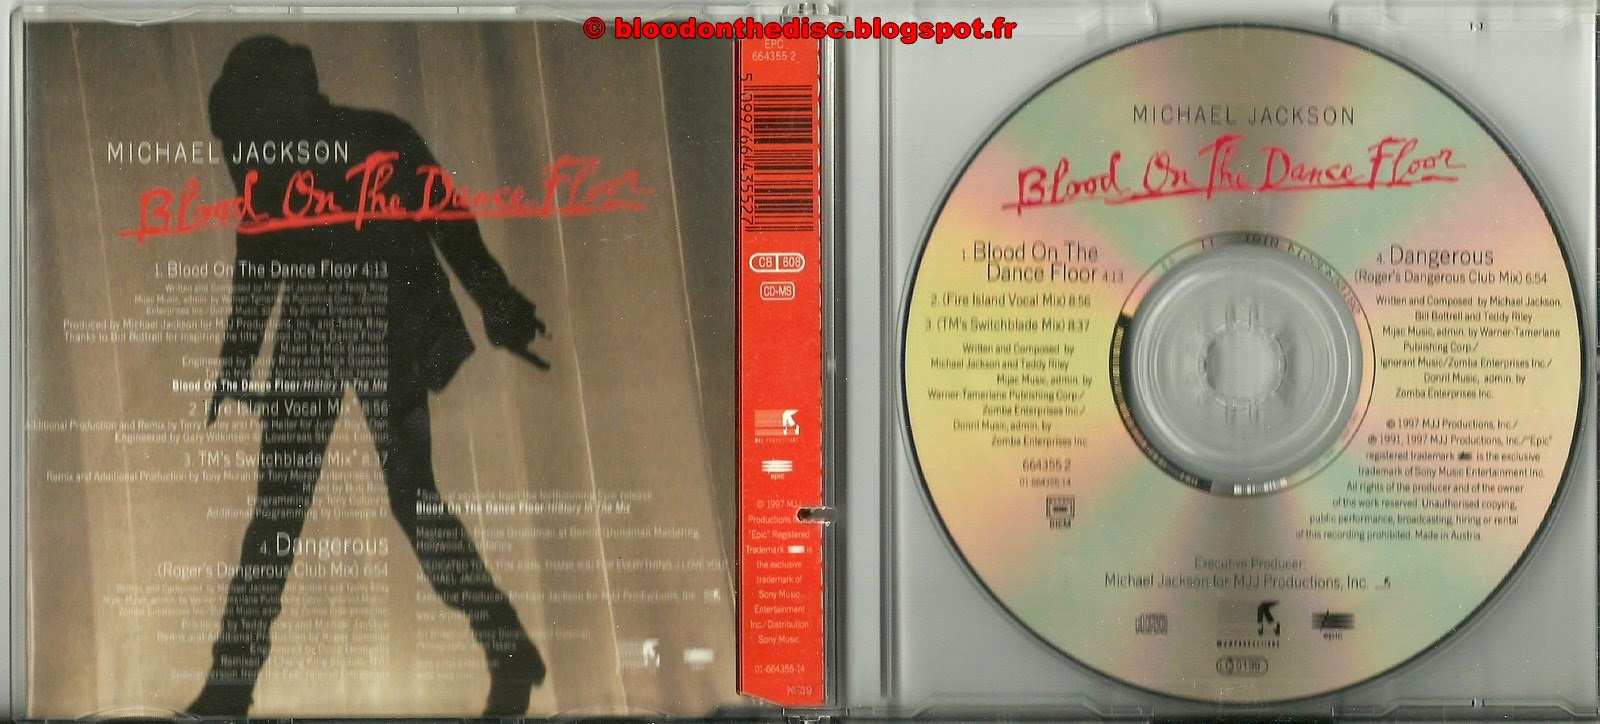 Blood on the dancefloor maxi cd